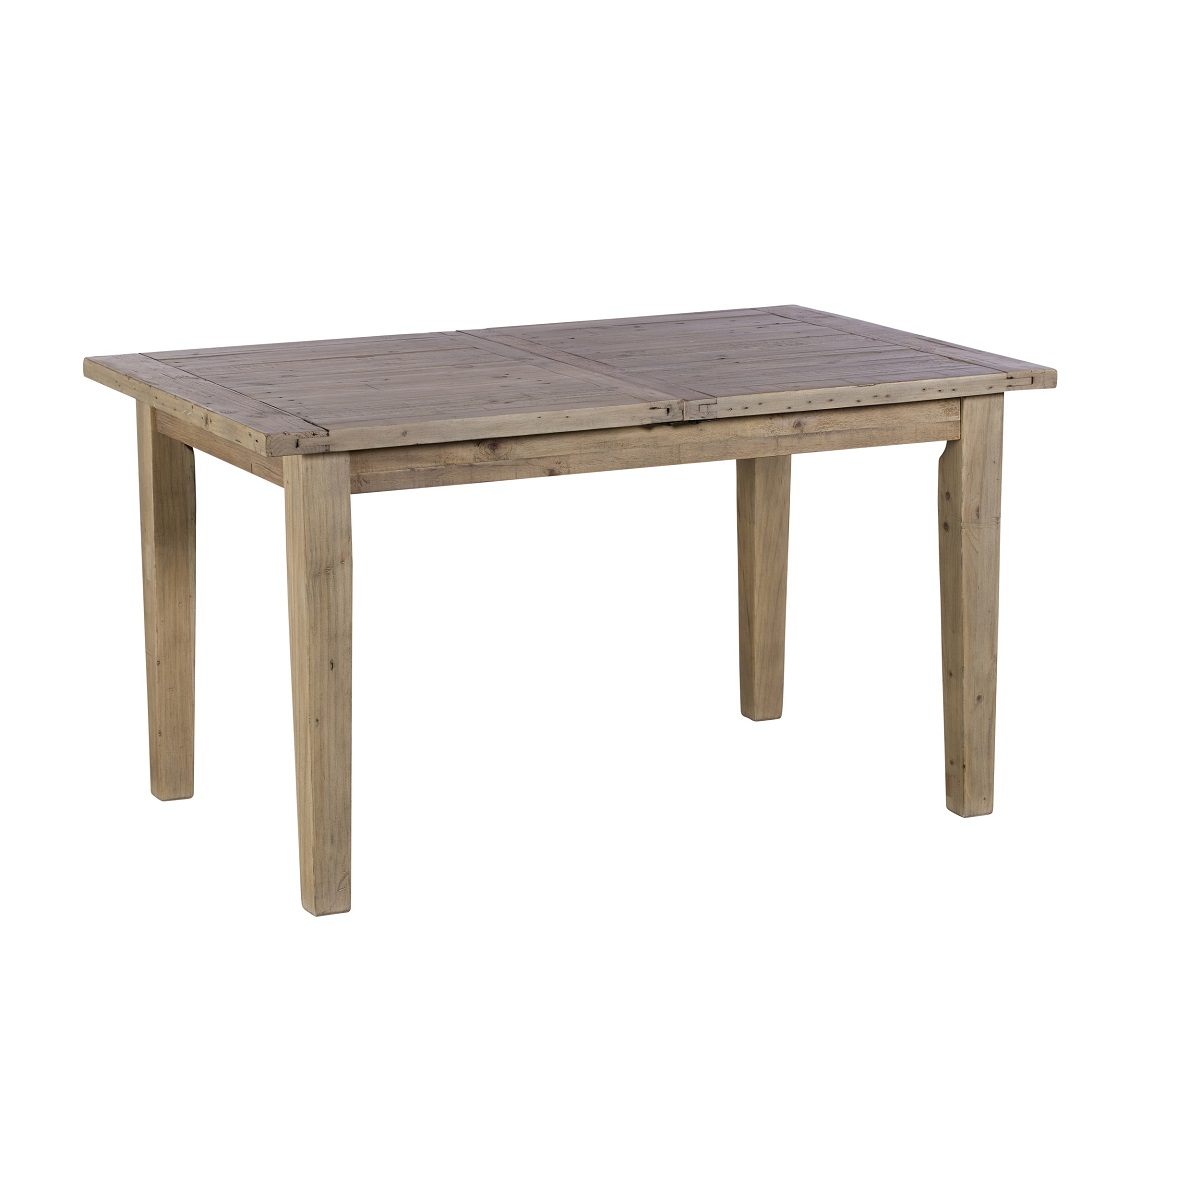 Palma 140-180cm Ext Dining Table